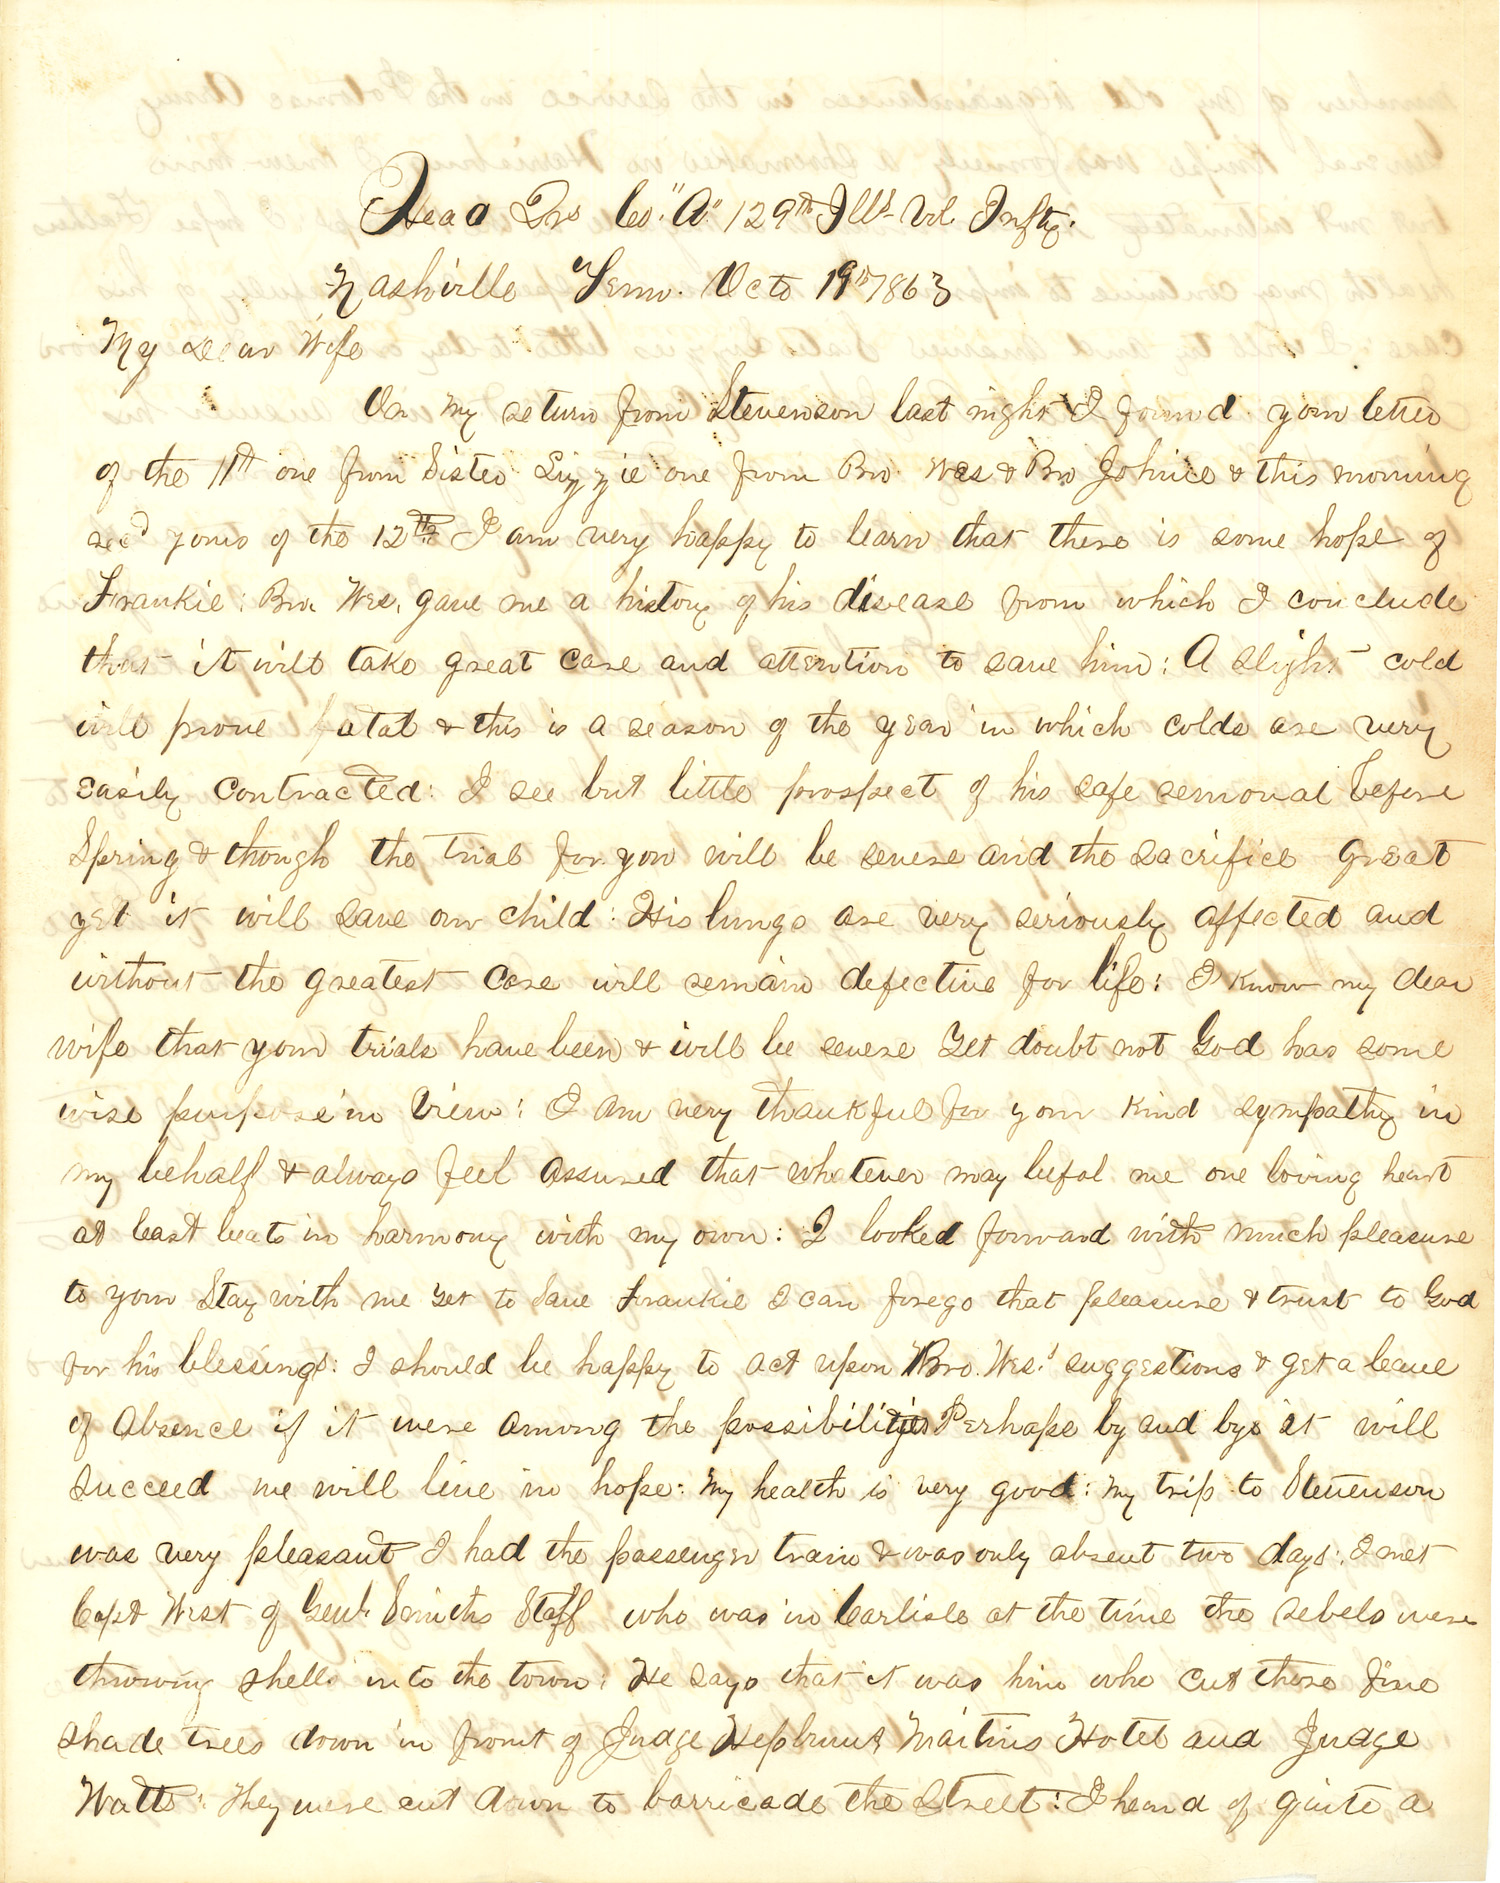 Joseph Culver Letter, October 19, 1863, Page 1